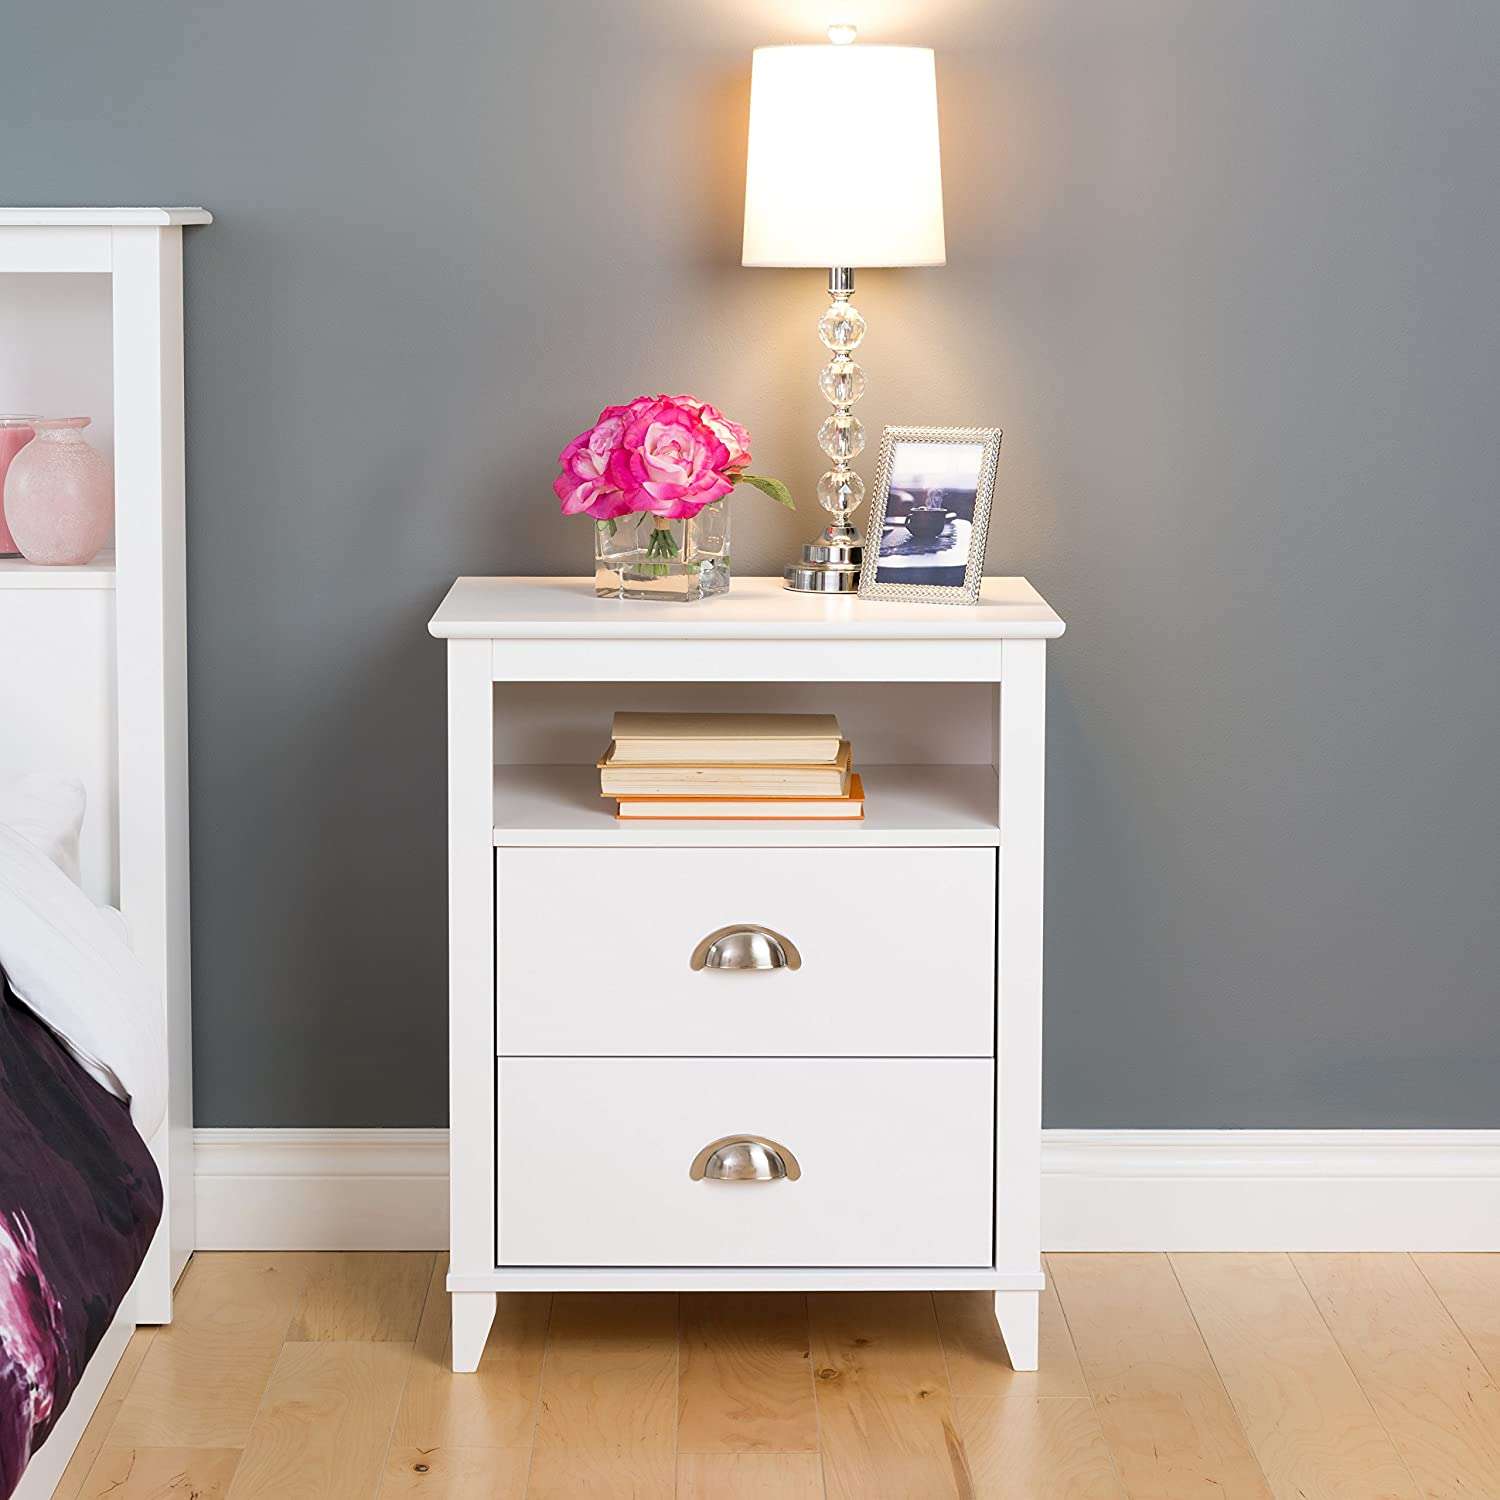 Prepac Yaletown 2021new Max 64% OFF shipping free 2 Drawer Nightstand Tall White